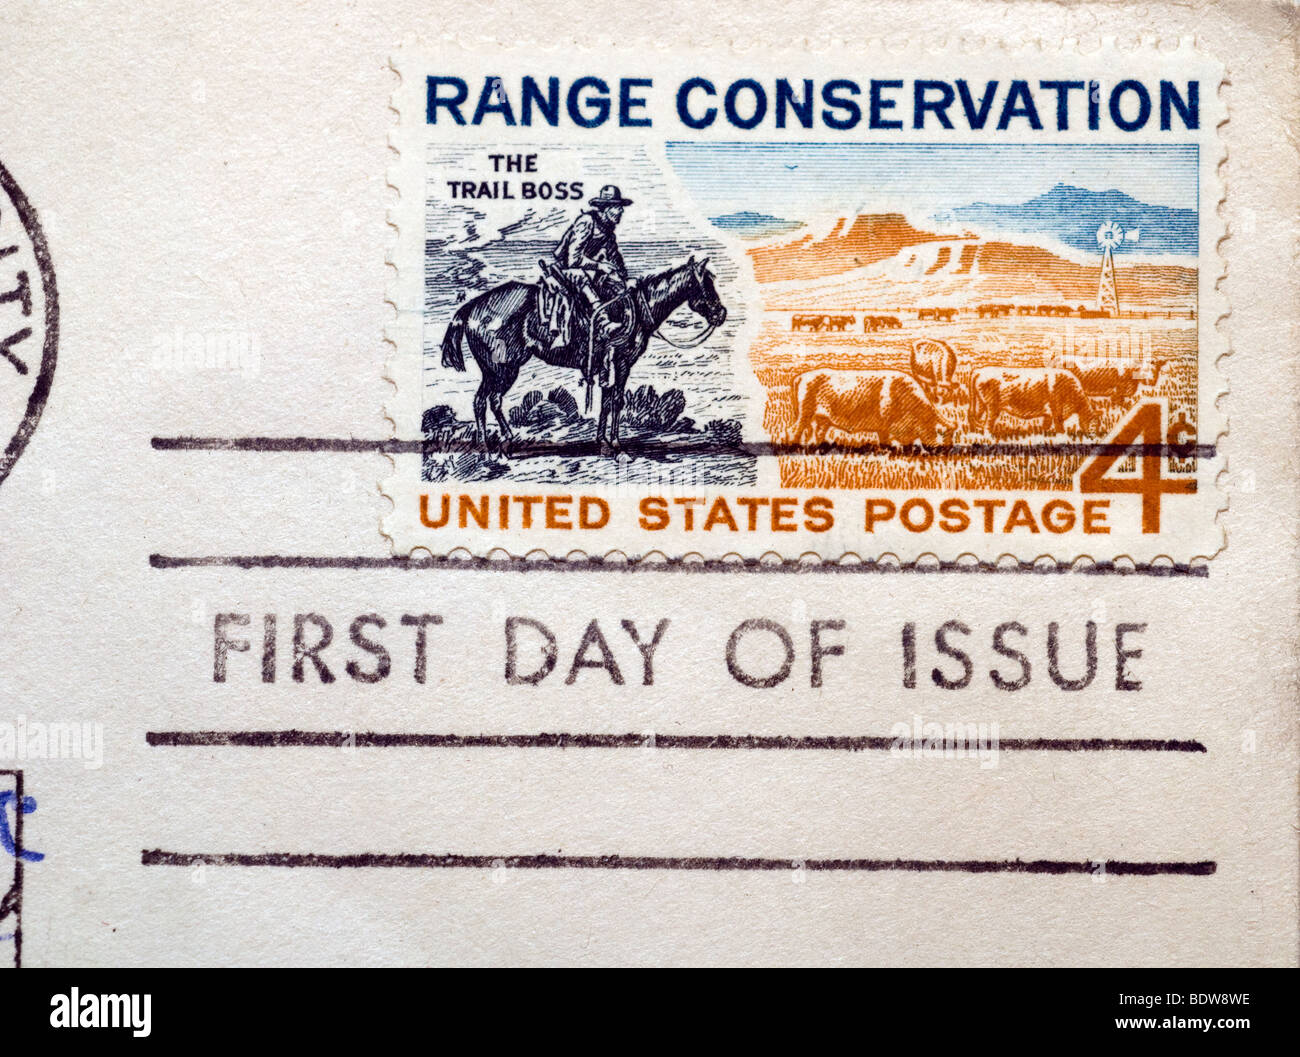 First day of issue postage cancellations. 1961 Range Conservation. (© Richard B. Levine) - Stock Image